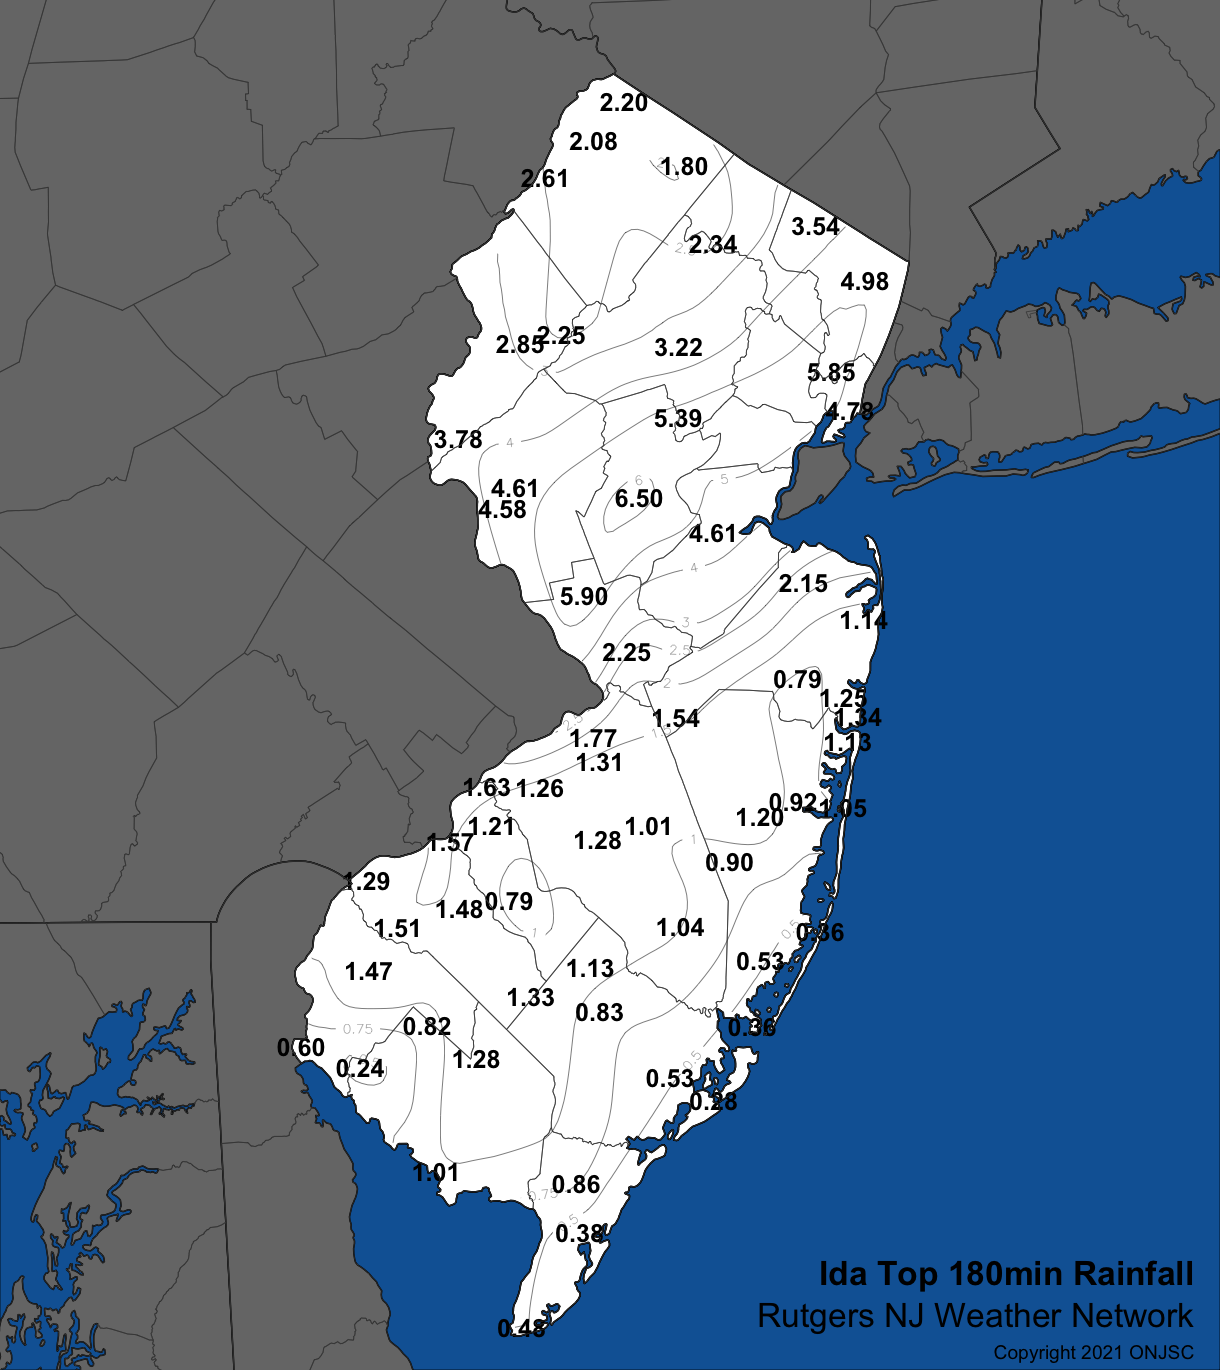 Peak three-hour rainfall across NJ based on observations from Rutgers NJ Weather Network stations and the Newark Airport NWS station.